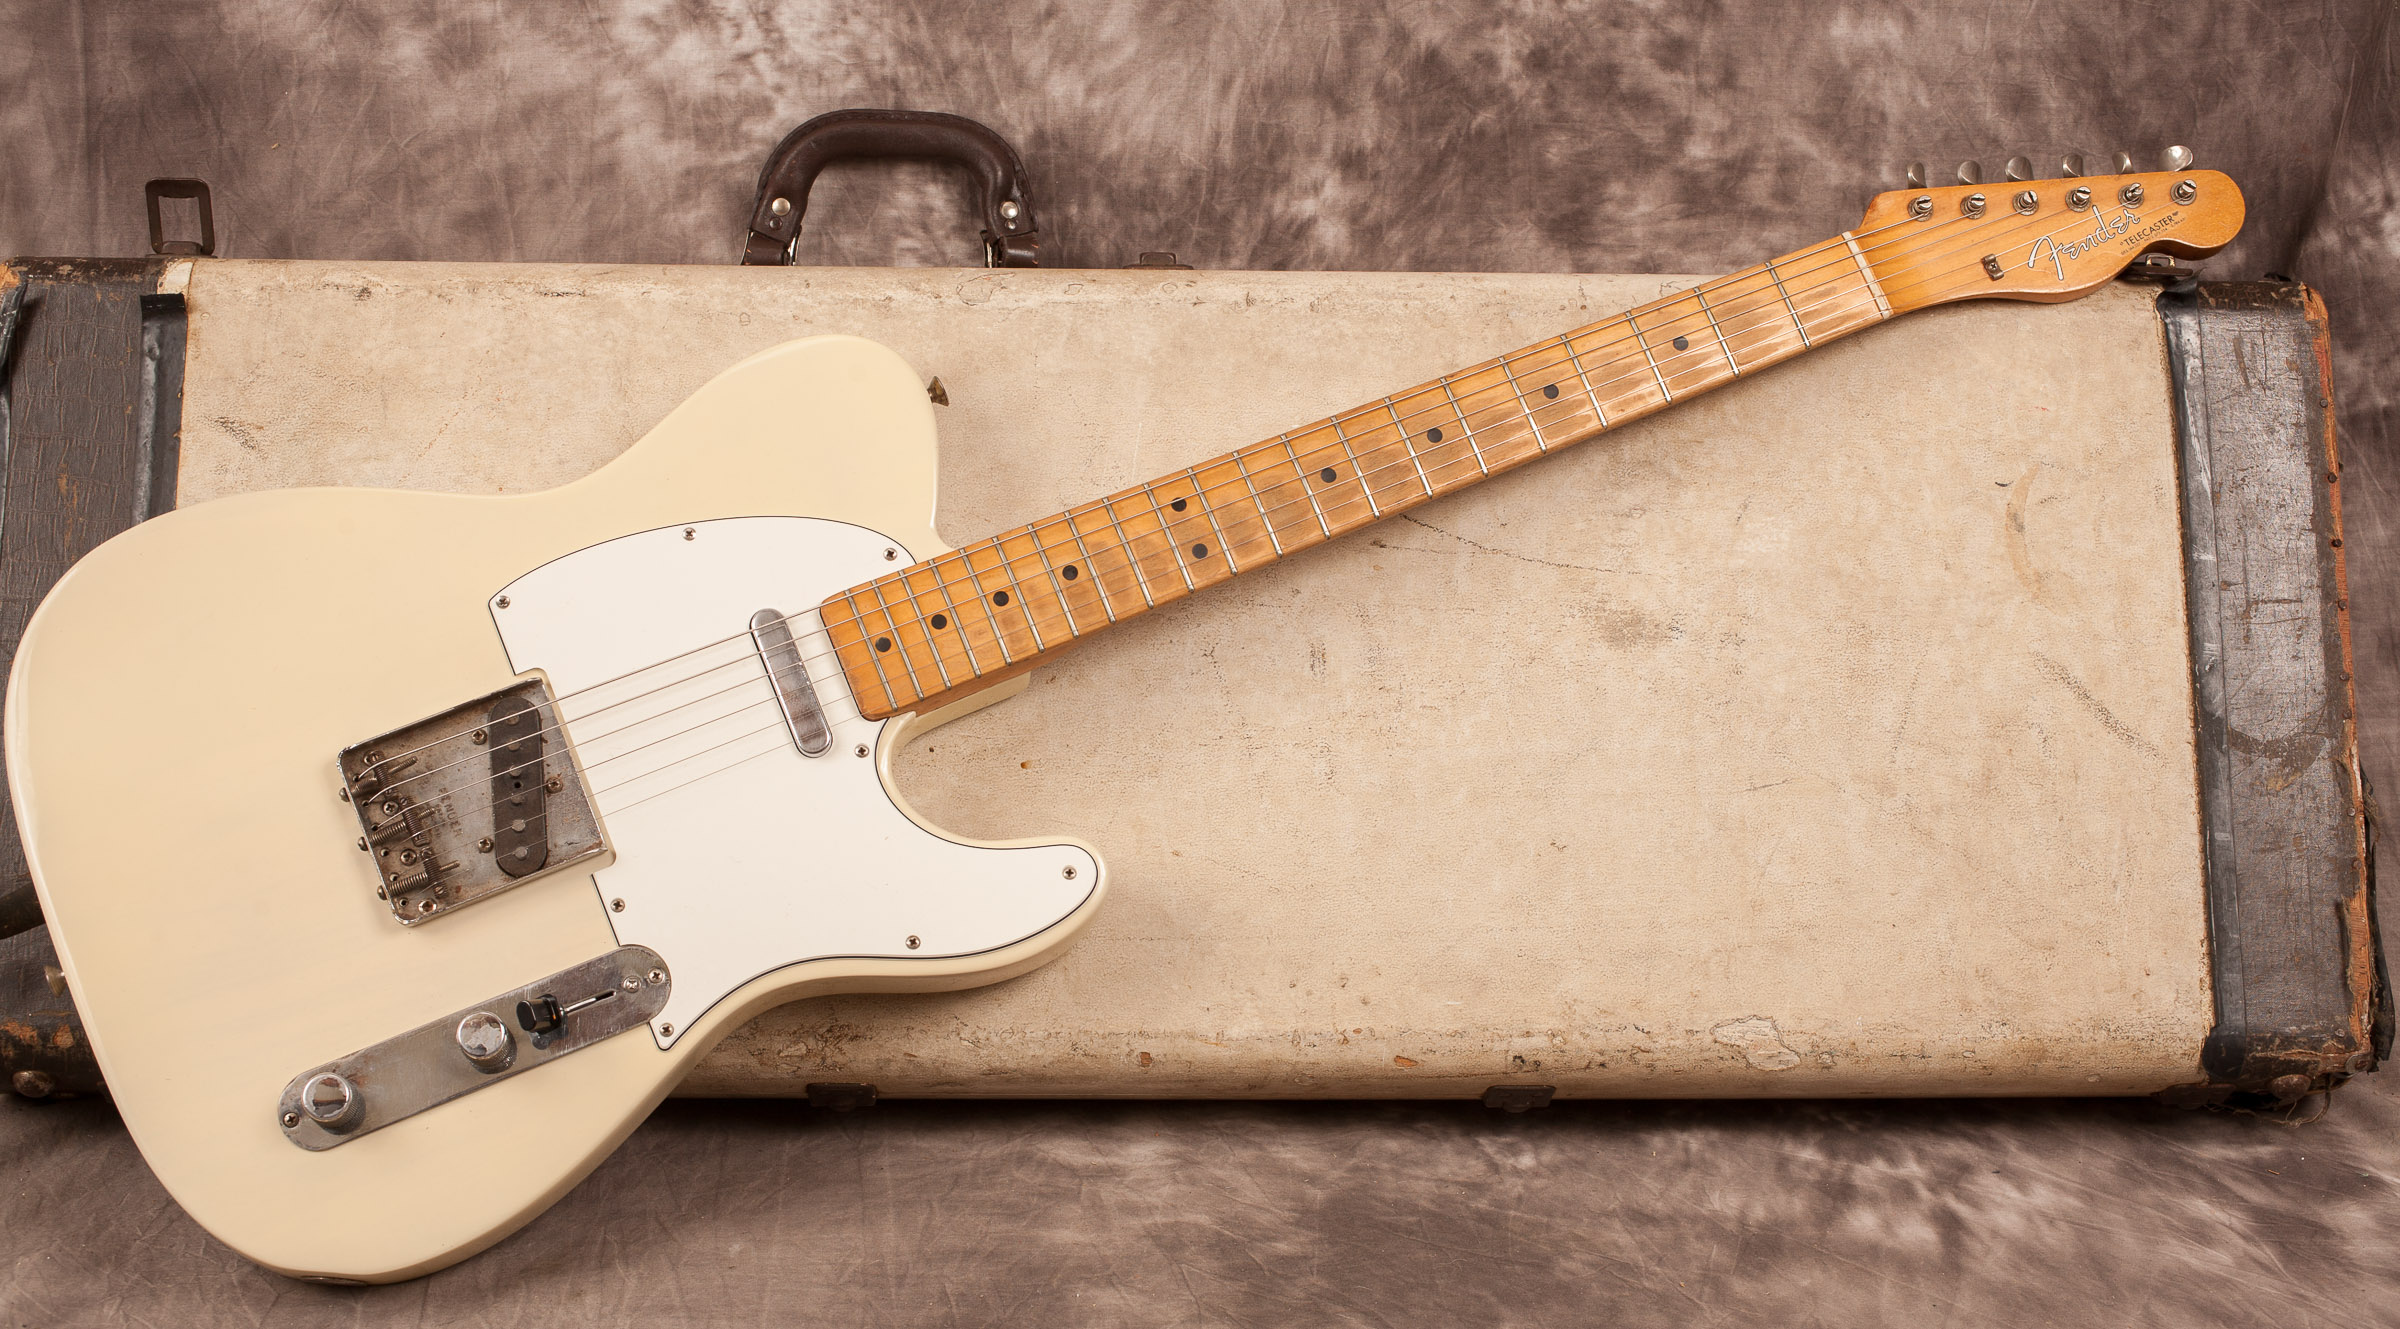 1965 Fender Telecaster Blonde Gt Guitars Electric Solid